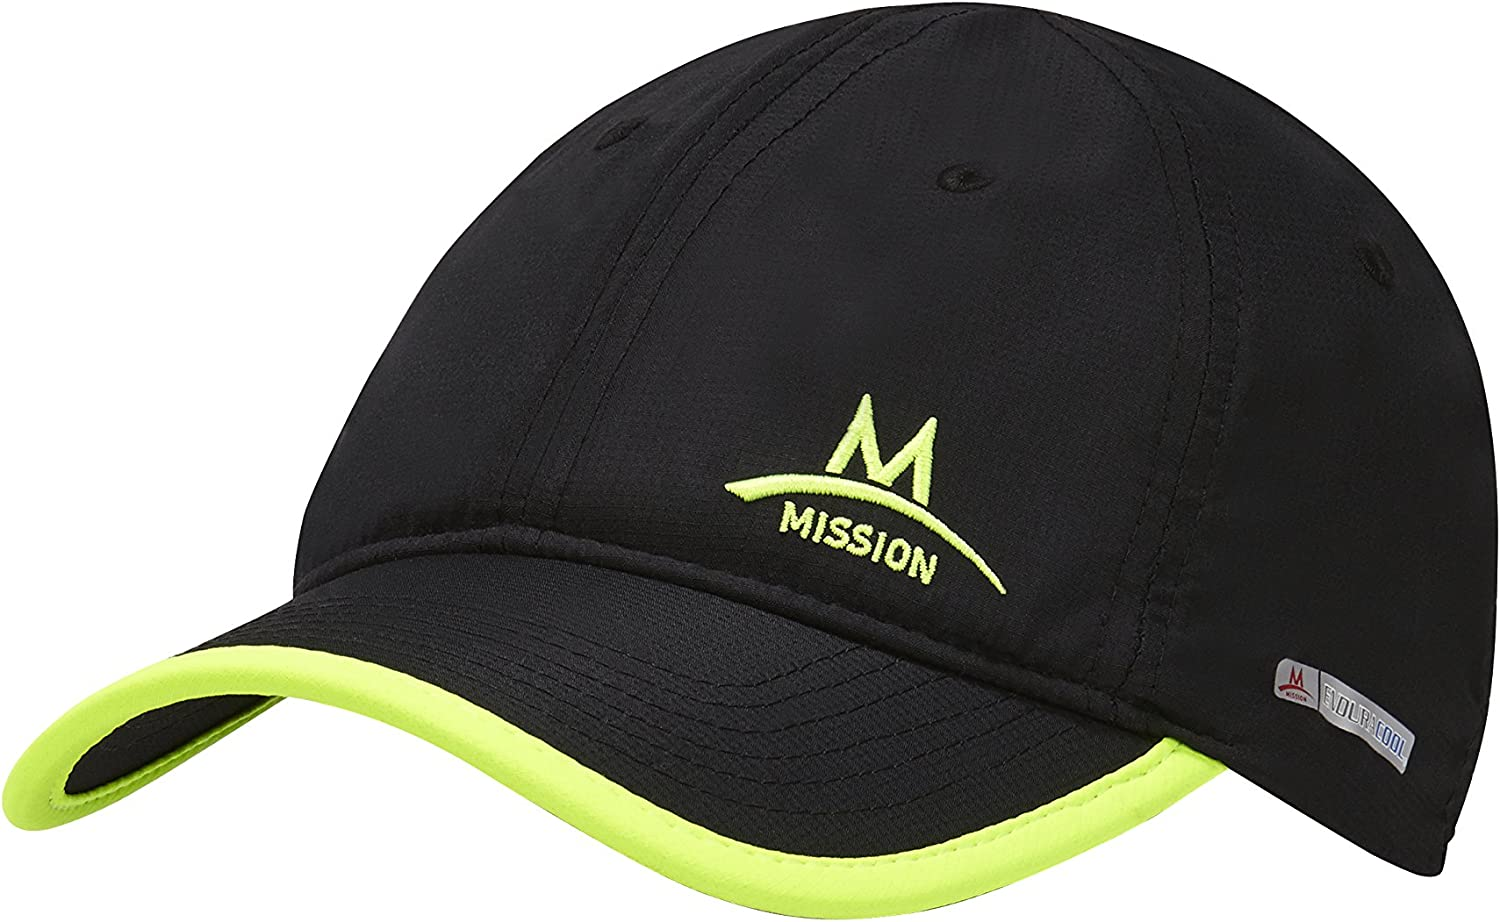 MISSION Performance Cooling Hat